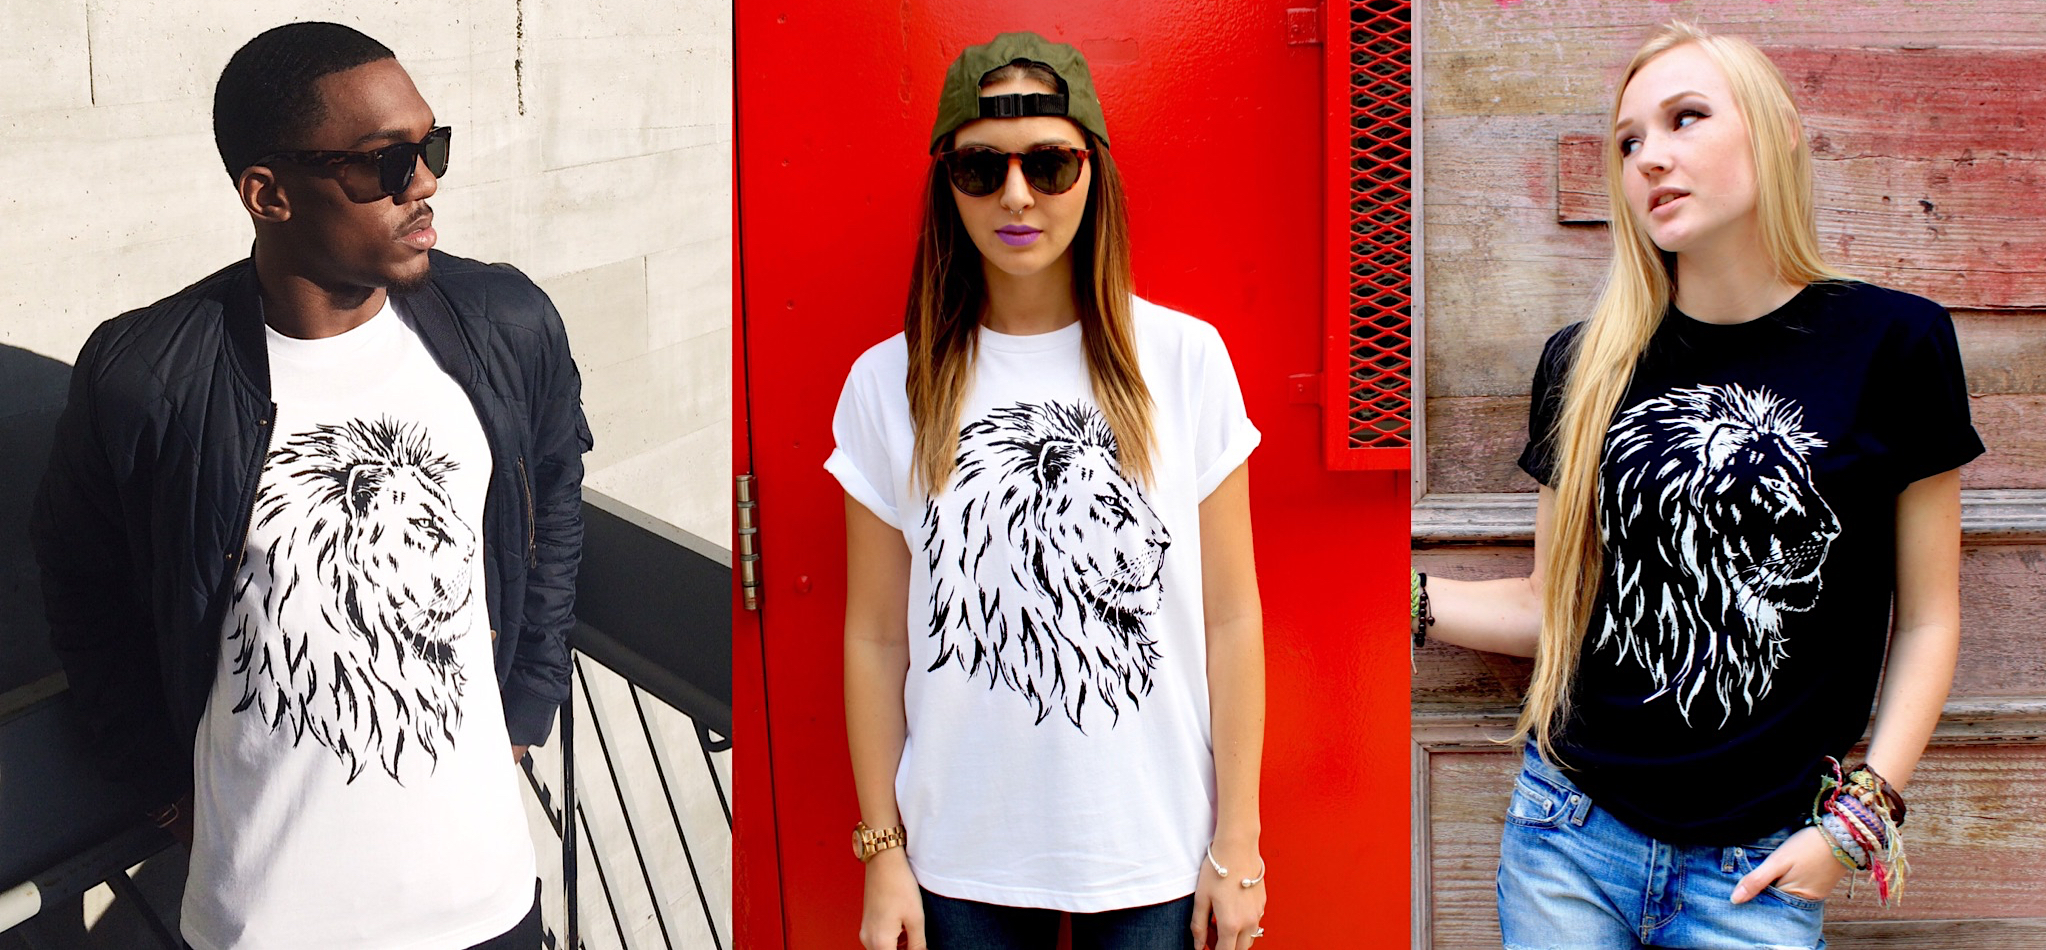 SAVE A LION Unisex tees are eco-friendly, ethically sourced, super soft 100% organic cotton, hand drawn and silk-screened in non-toxic ink  . Order yours today. $5 from each purchase is donated directly to  National Geographic's Big Cats Initiative .